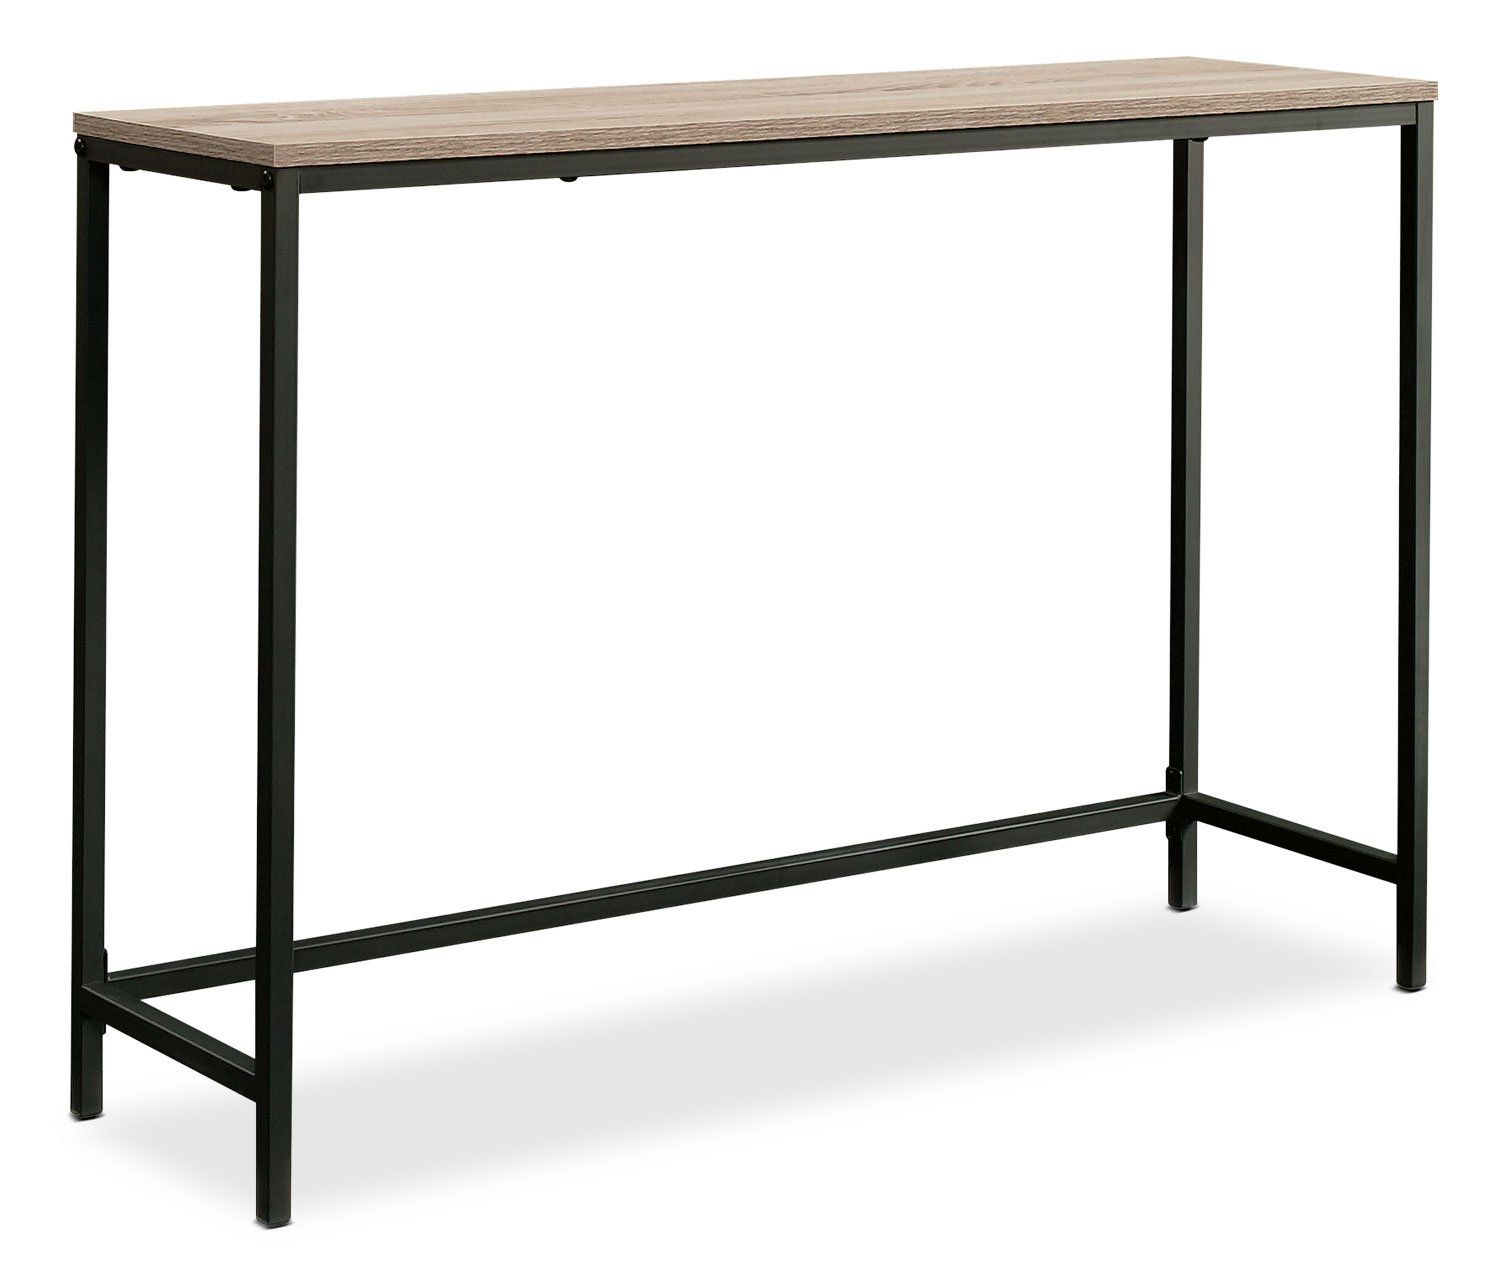 North Avenue Sofa Table Entryway Furniture Teak Dining Table Table